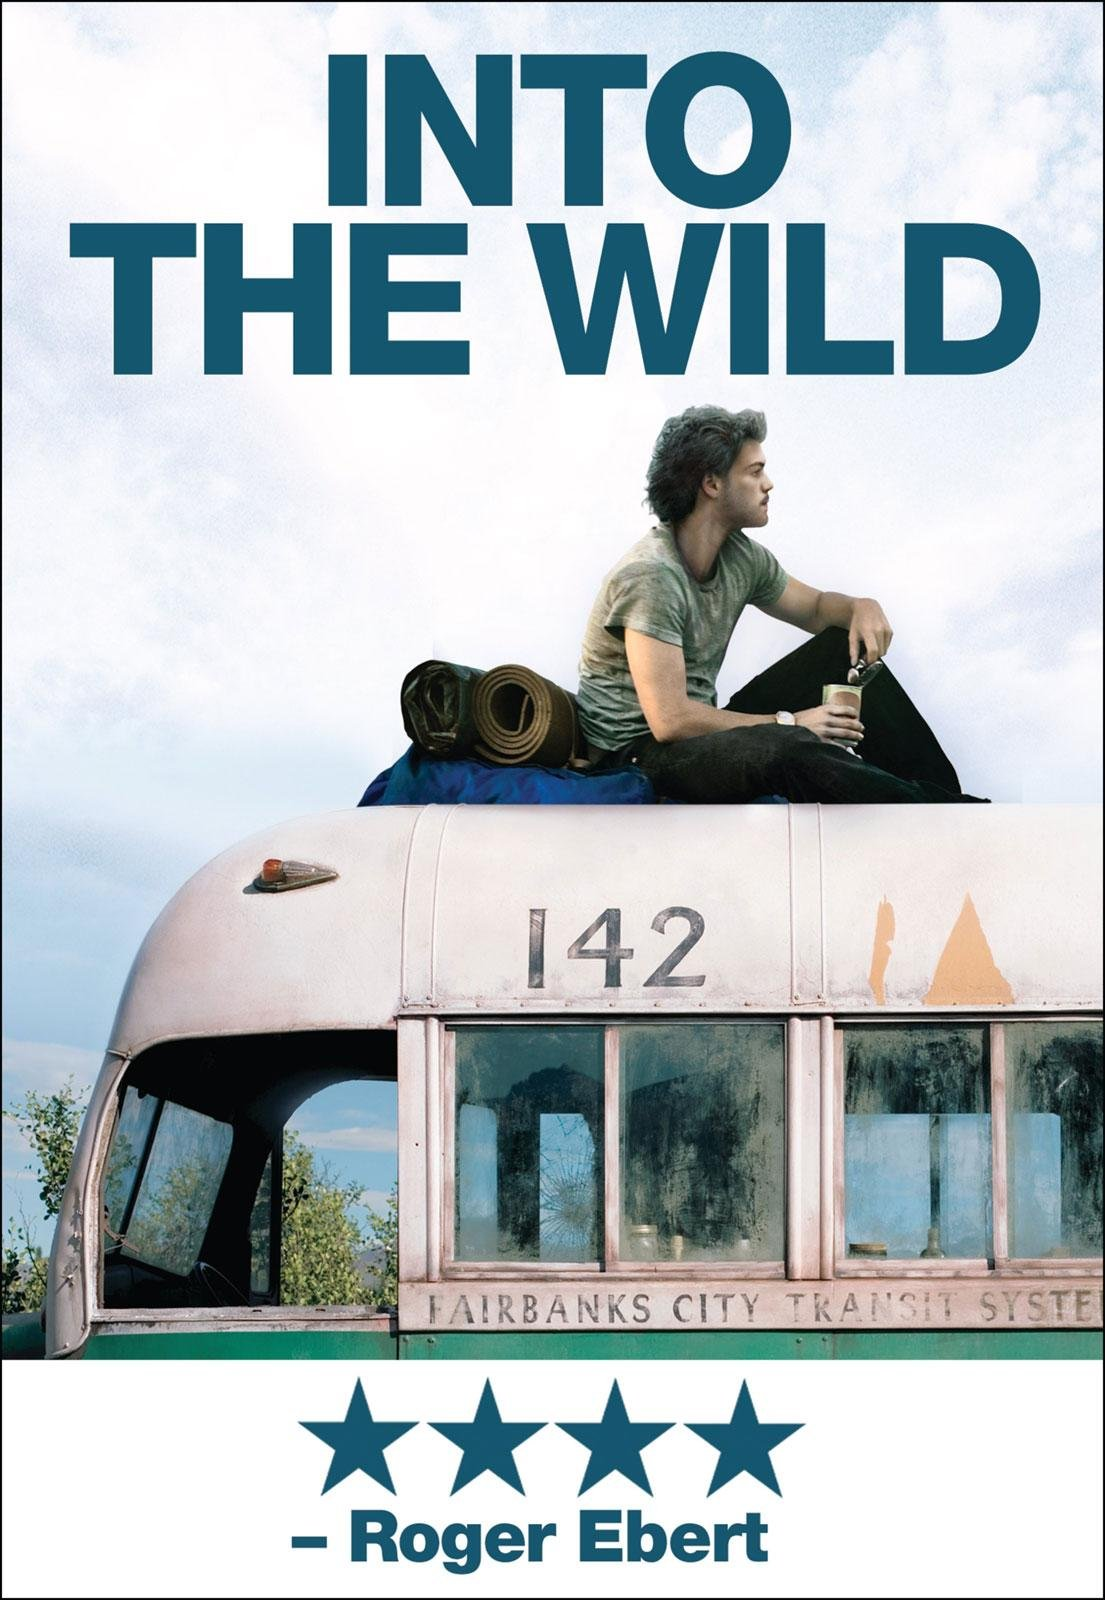 into the wild full movie download in hindi